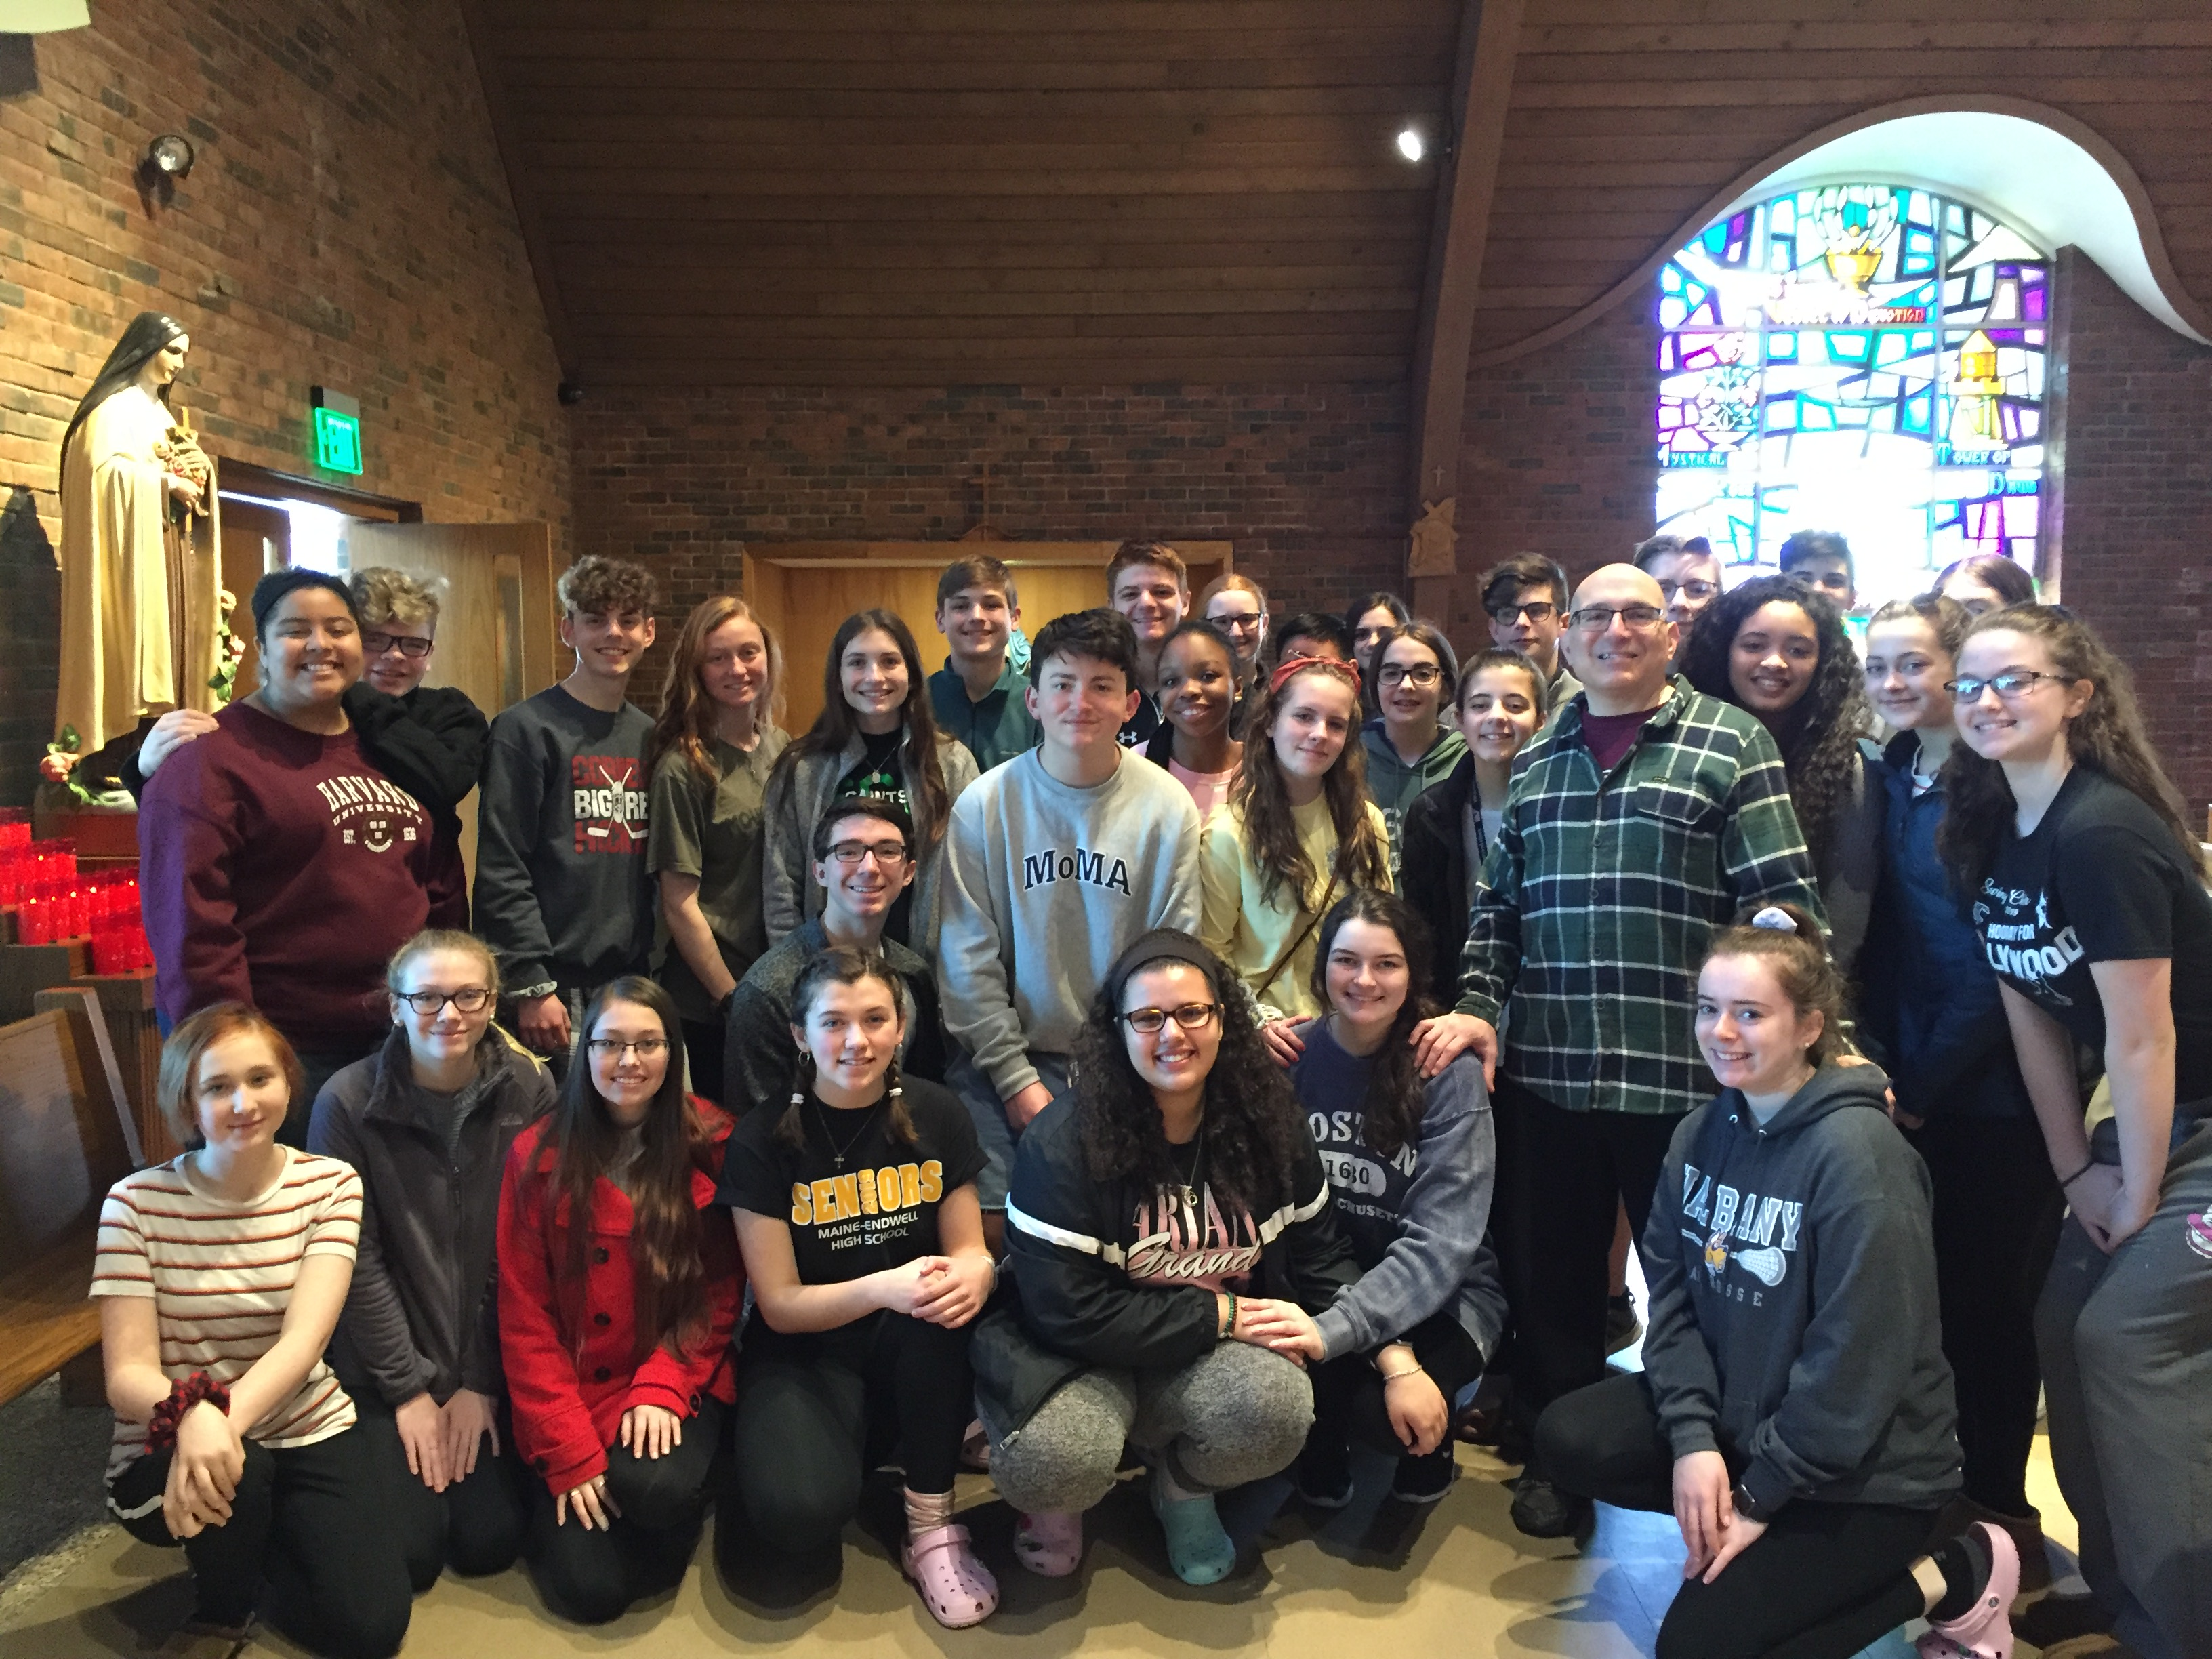 Students, teachers and parent chaperones from Seton Catholic Central High School attend 9:00 am Mass on Mar 31st,2019 at Our Lady's before heading home to Binghamton NY. They won the Choral Competition at the Boston International Music Festival.